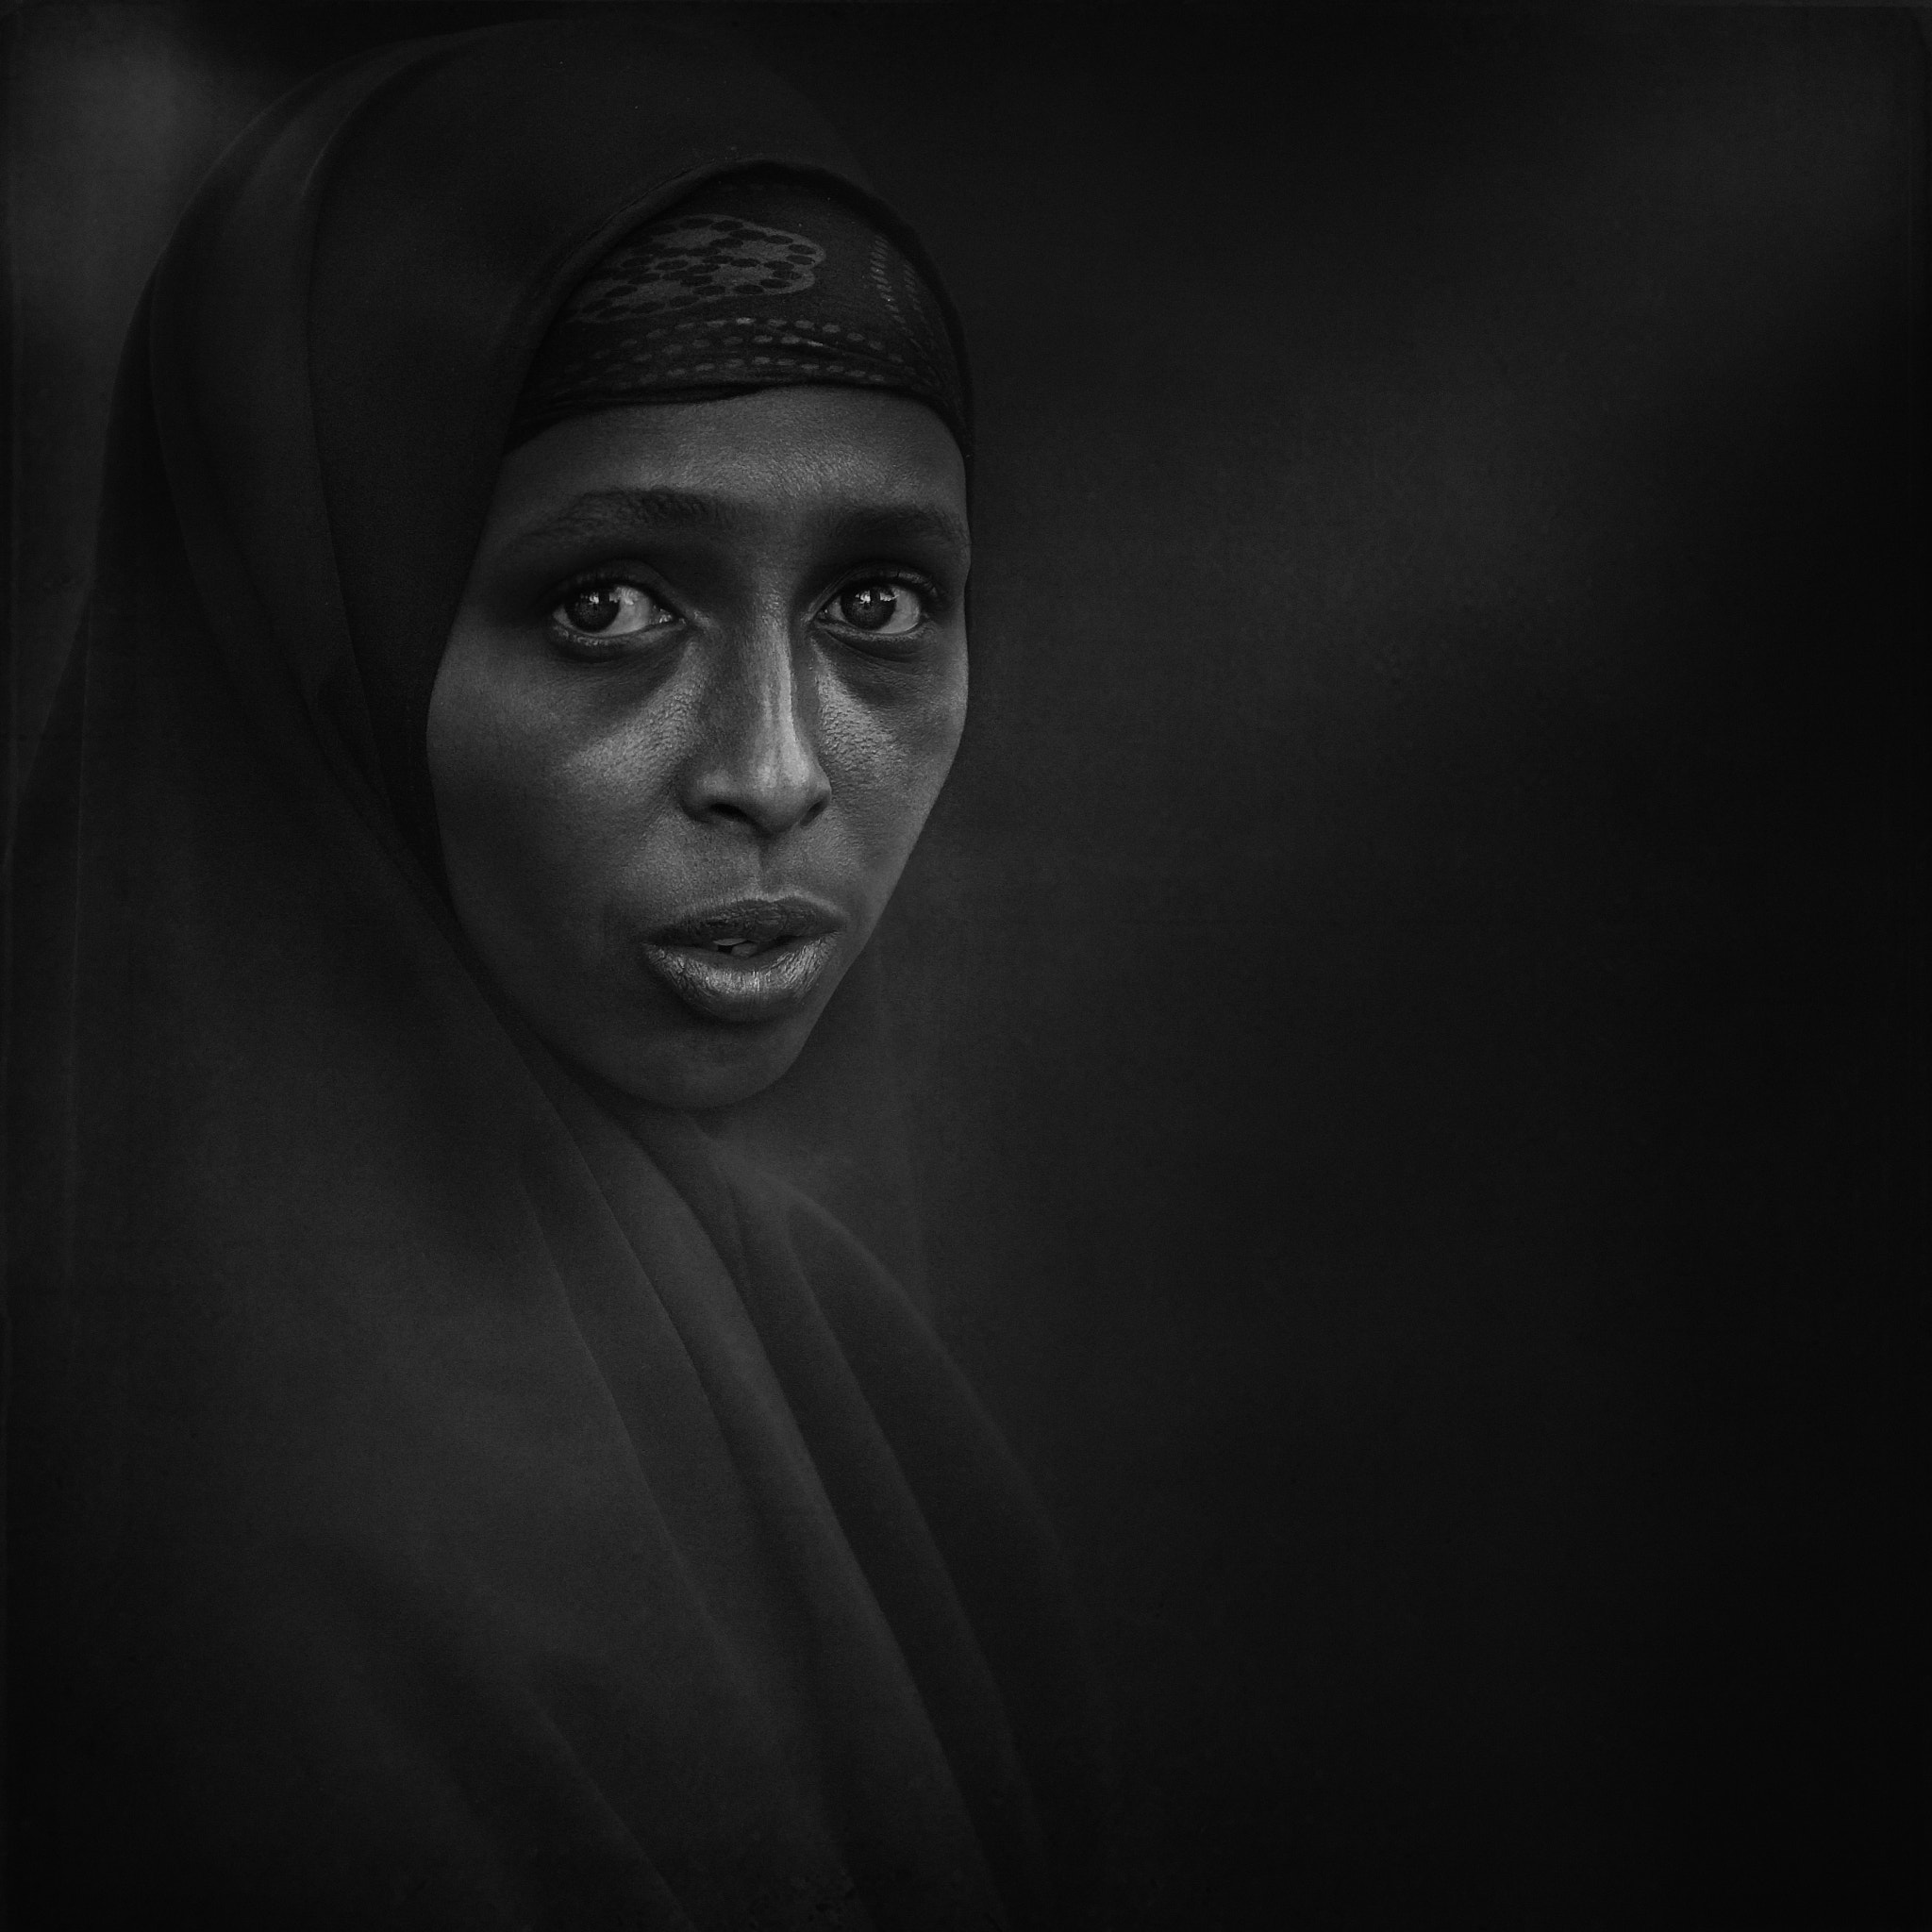 Photograph In. Manchester.  by Lee Jeffries on 500px